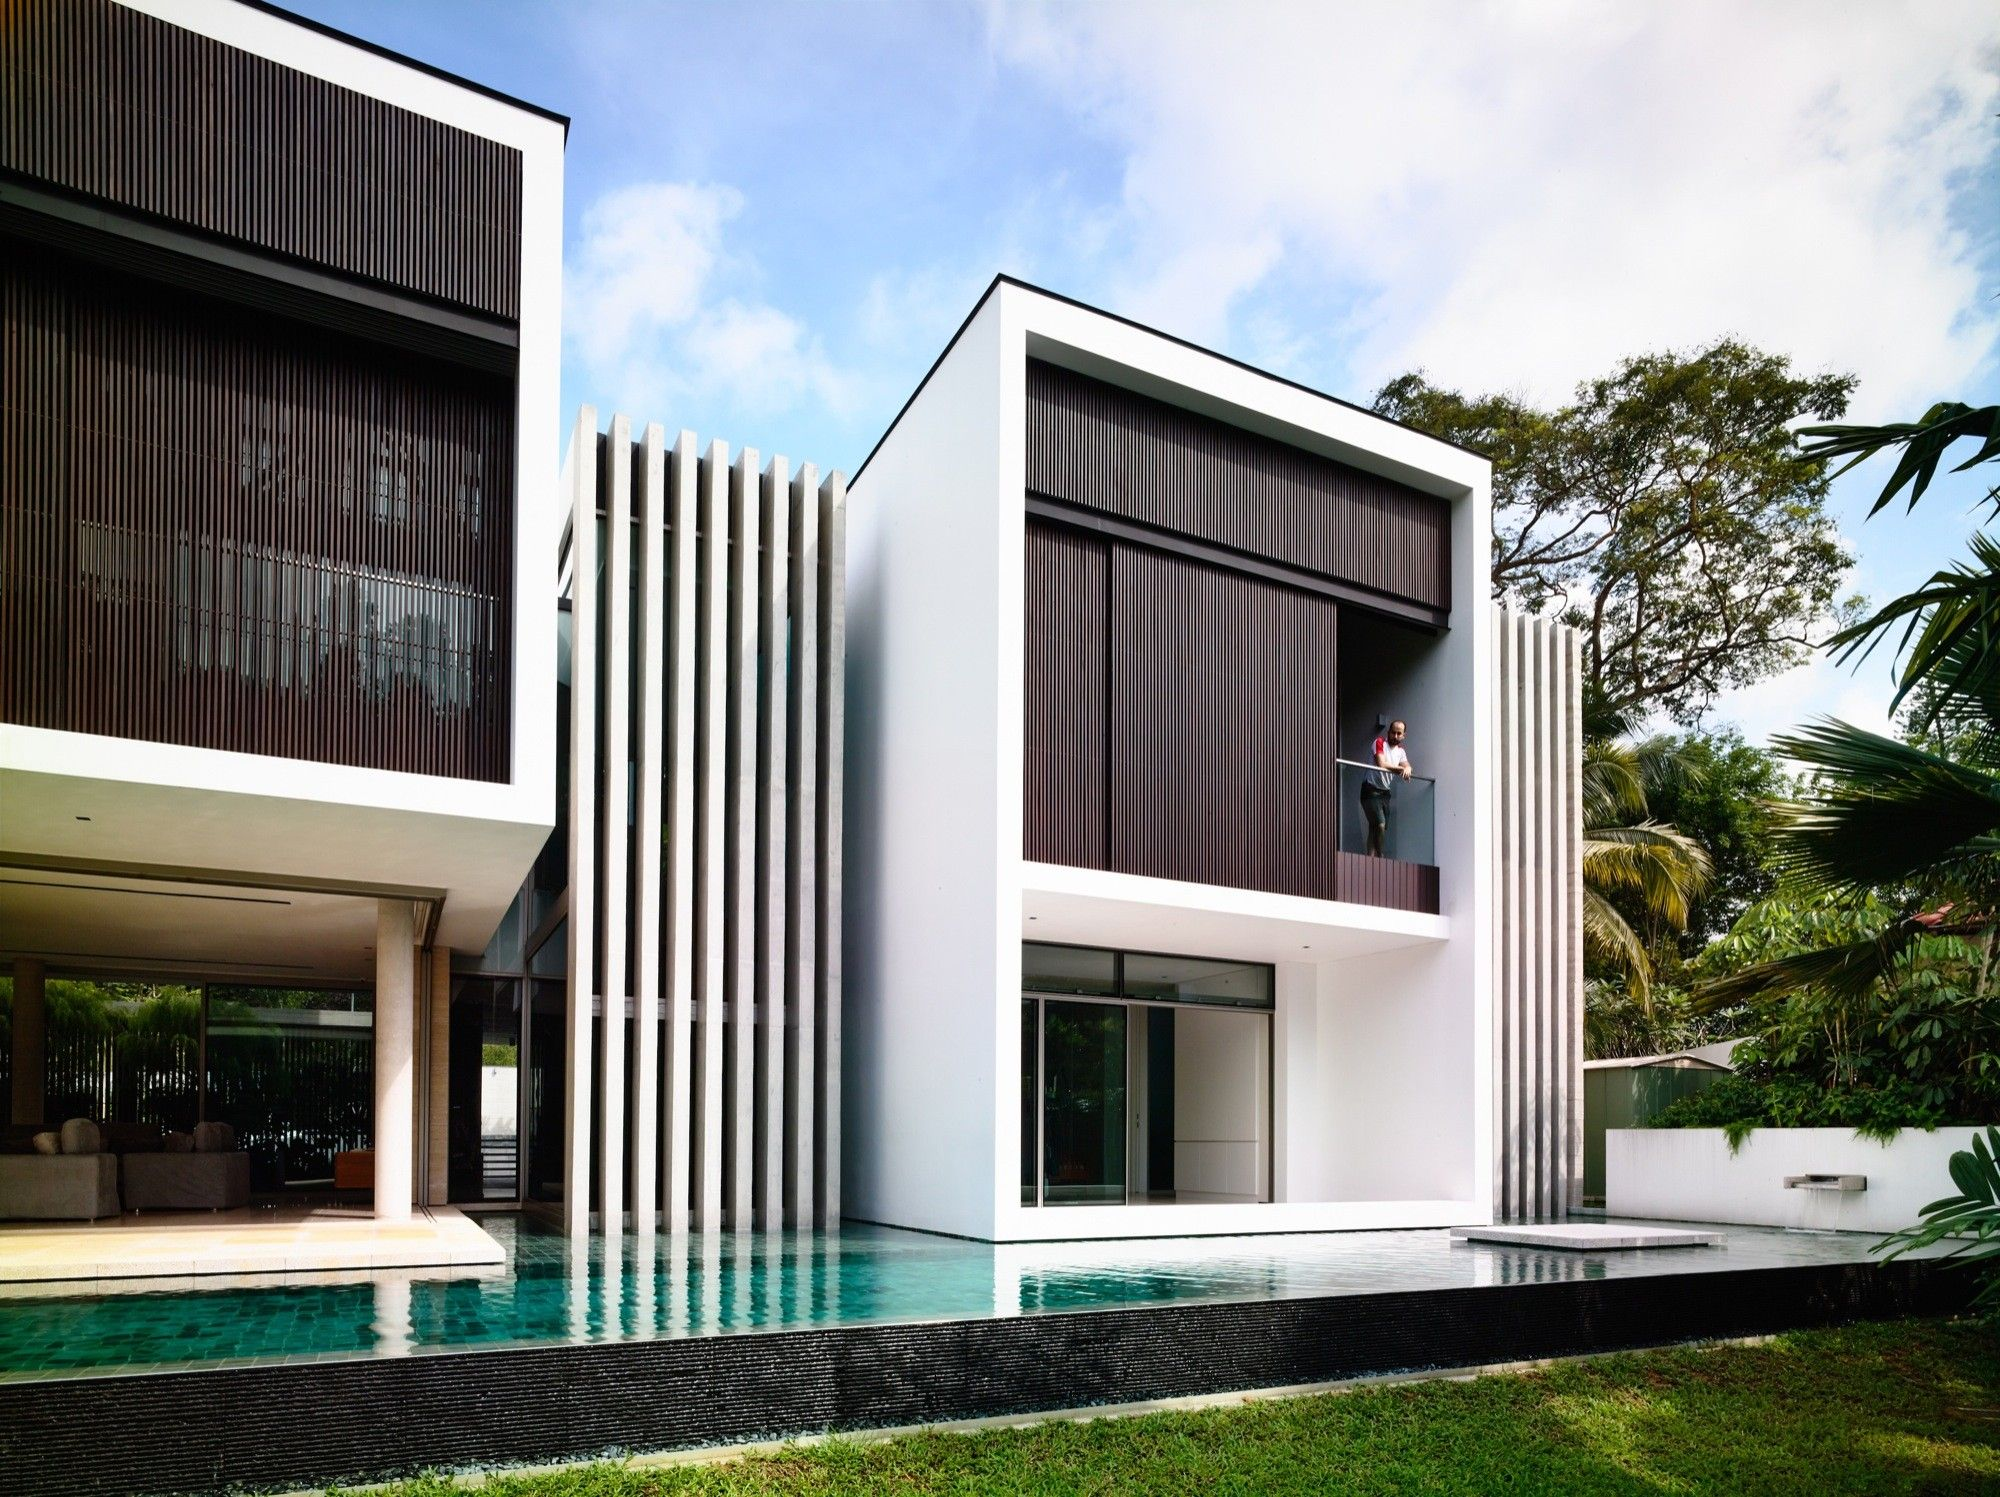 59btp house ong ong pte ltd house architecture and for Apartment design and development ltd